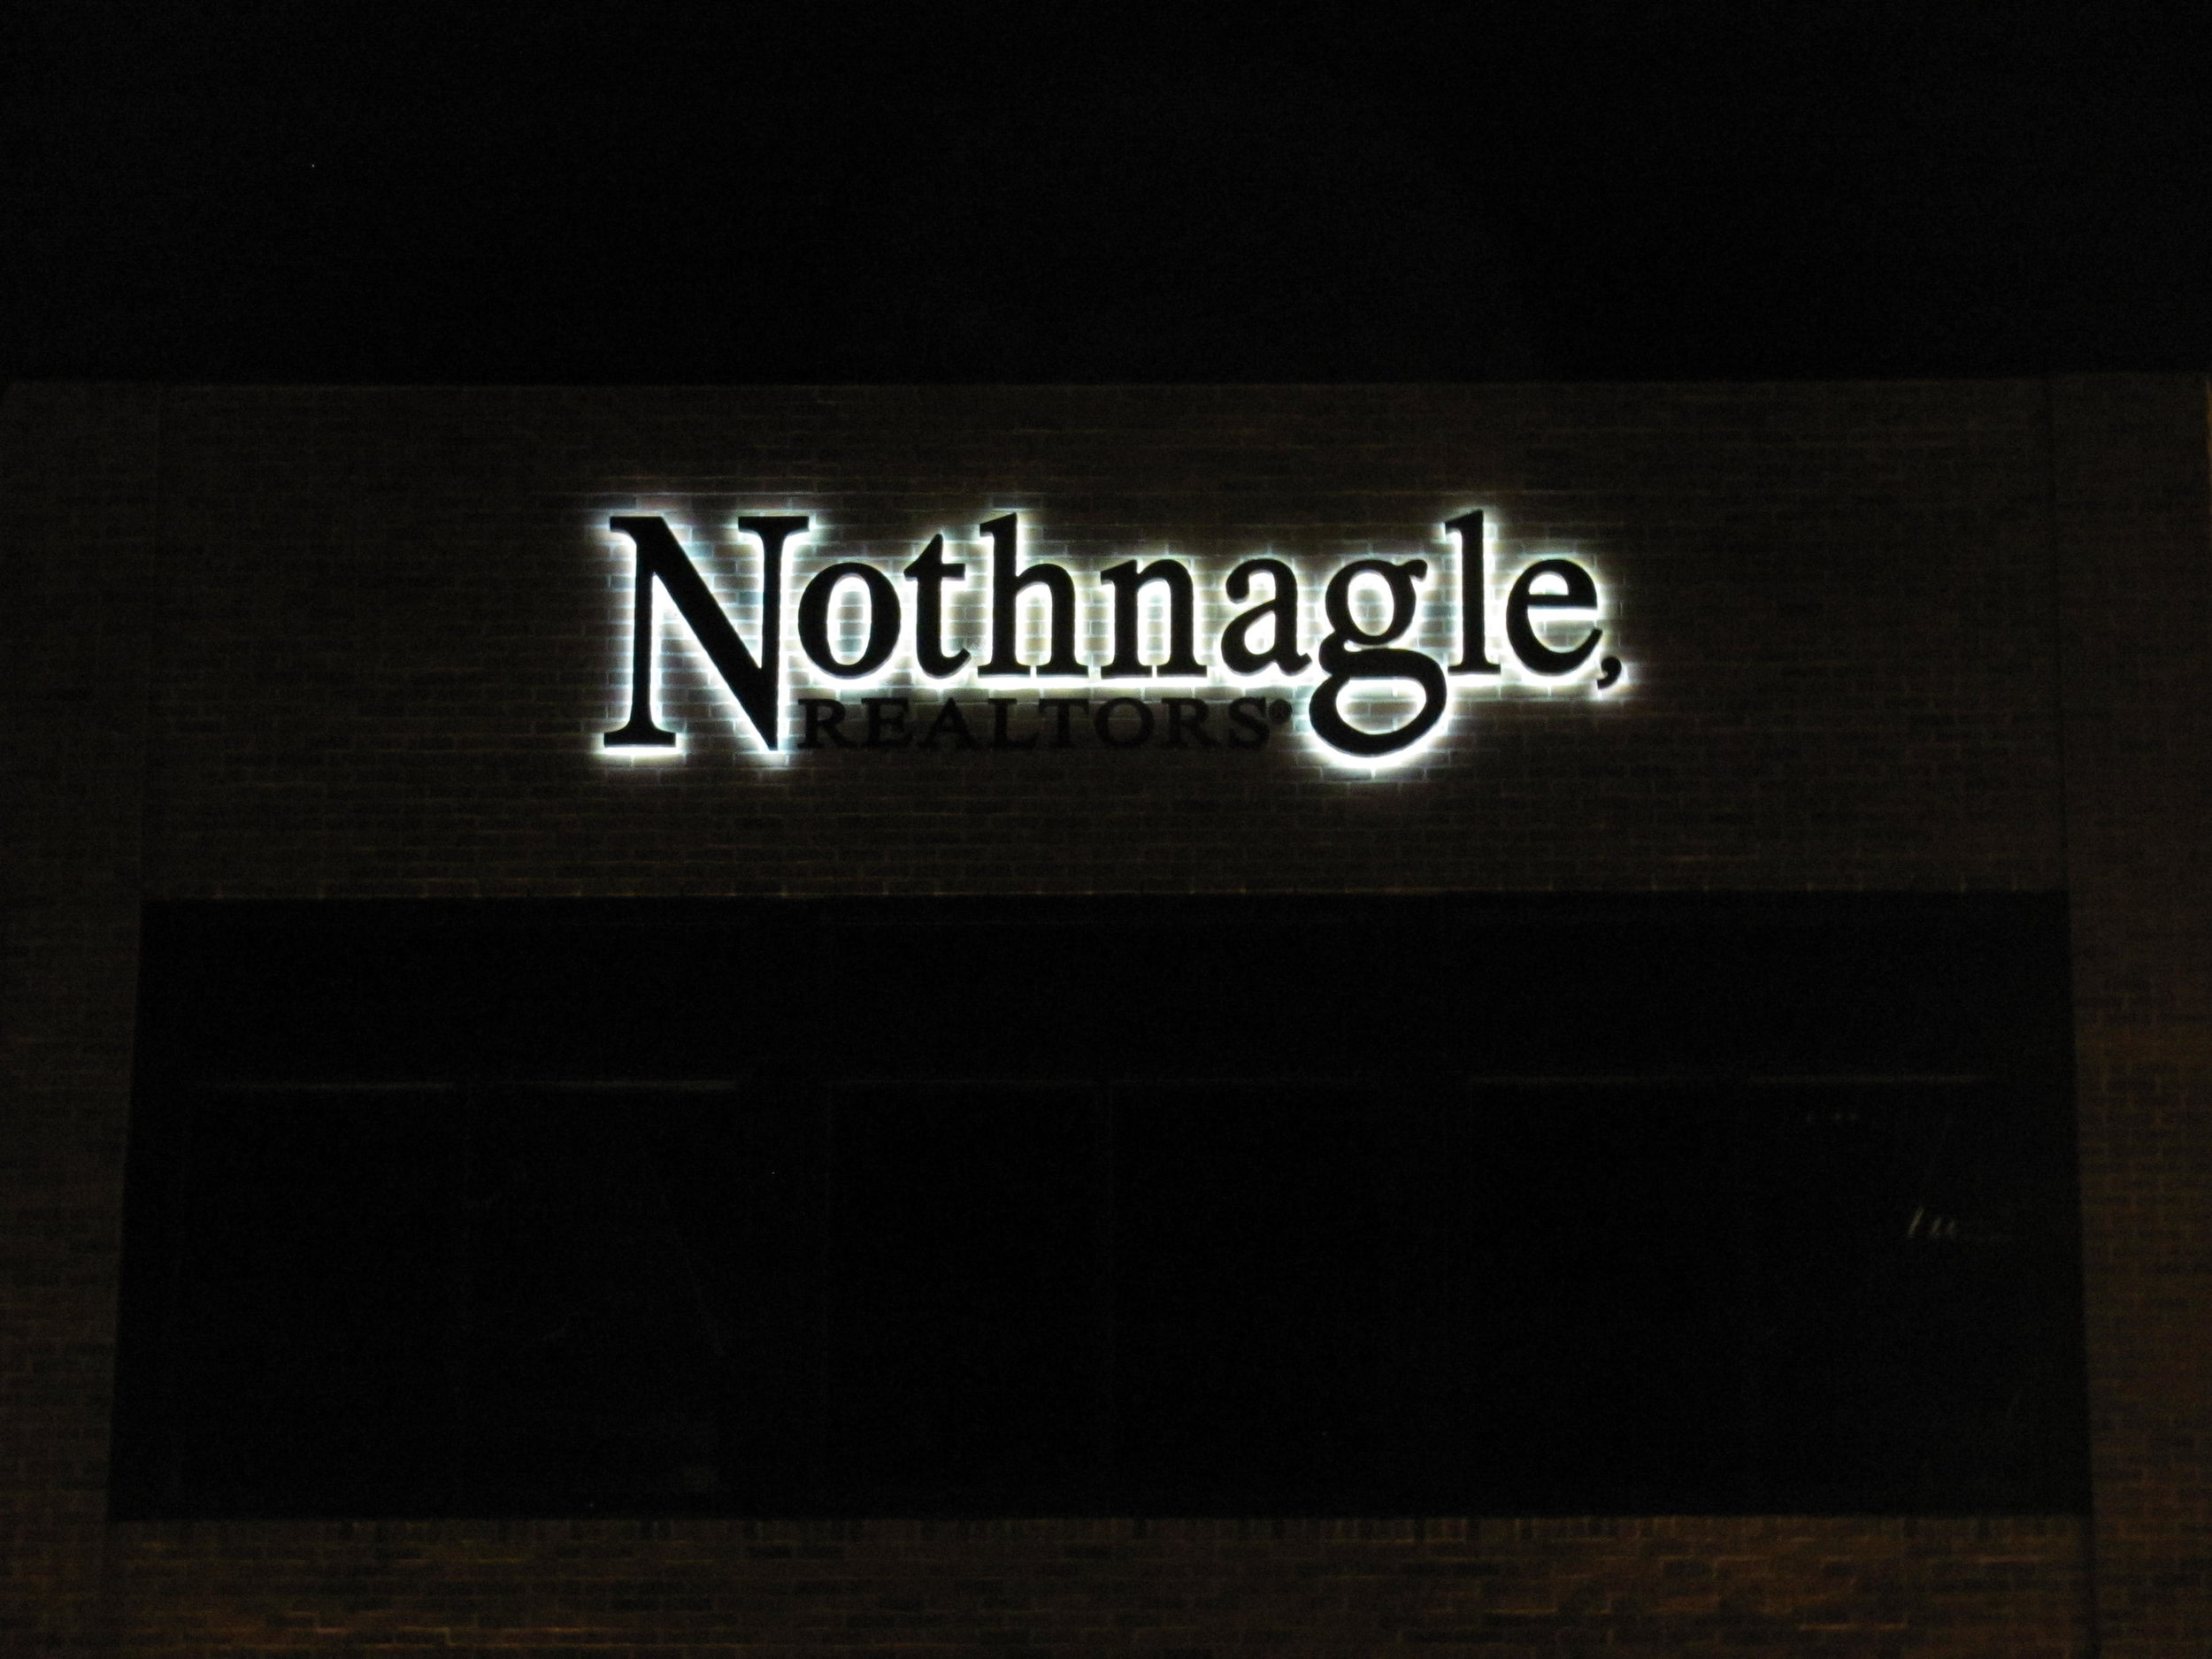 Nothnagle night .JPG